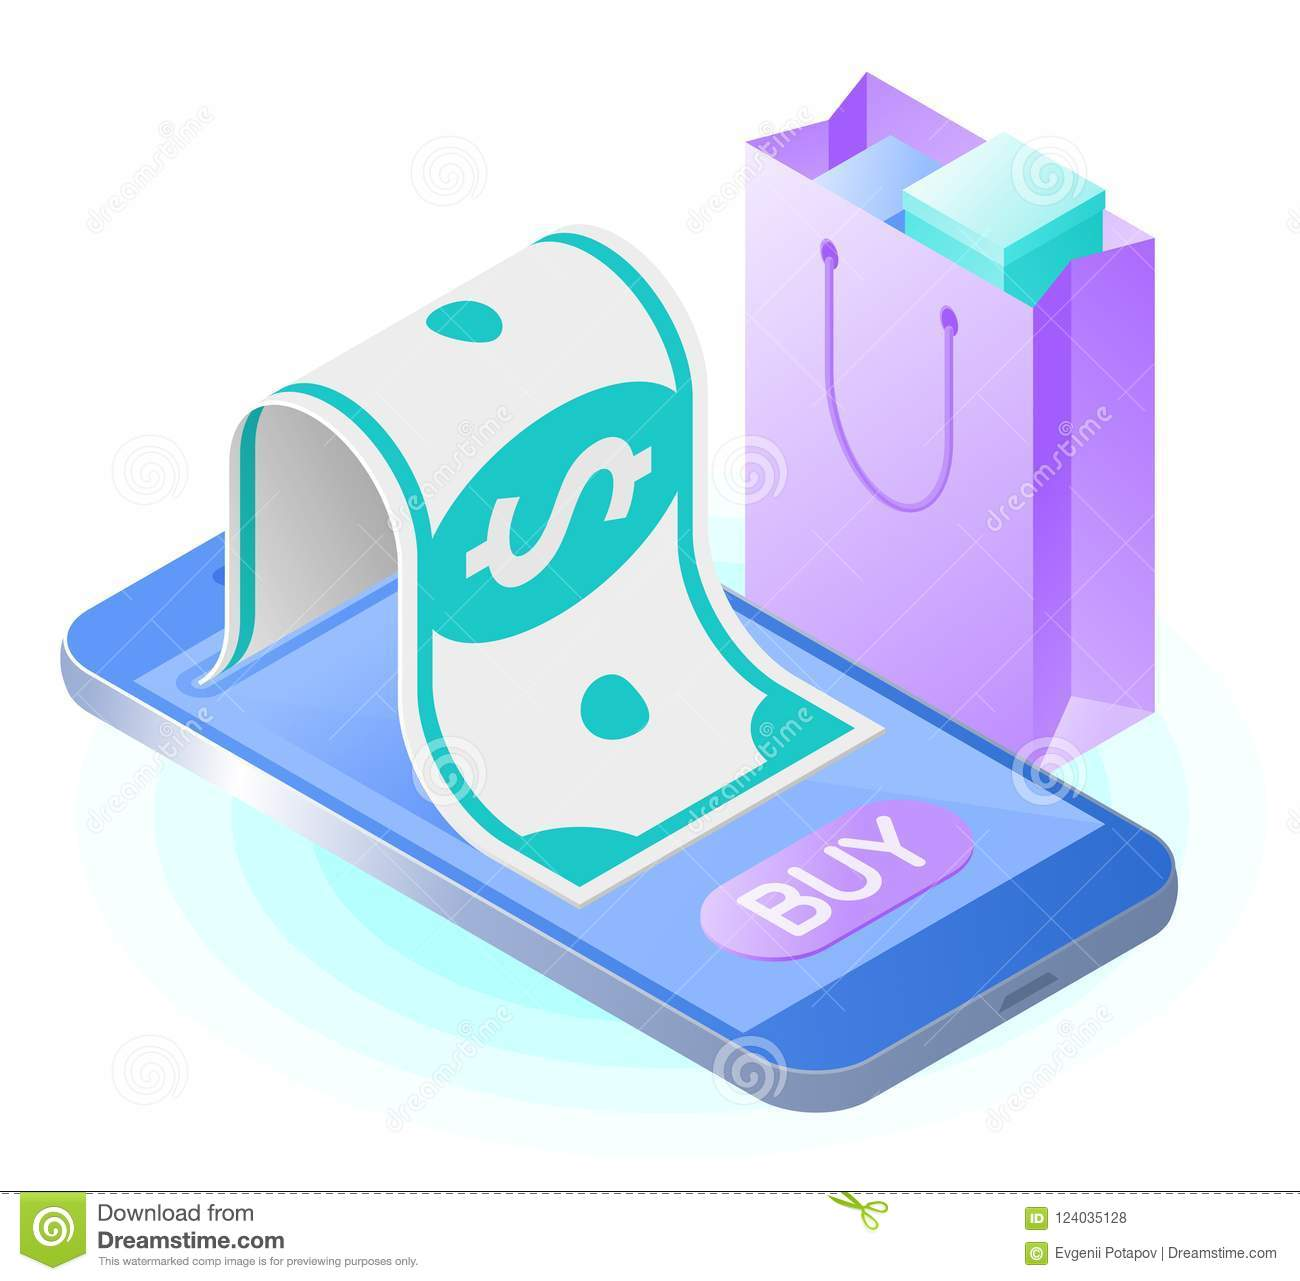 The Smart Phone Paper Dollar Shopping Bag Flat Vector Isometric Illustration Online Store Internet Shop Web Buying And Paying Mobile Payment